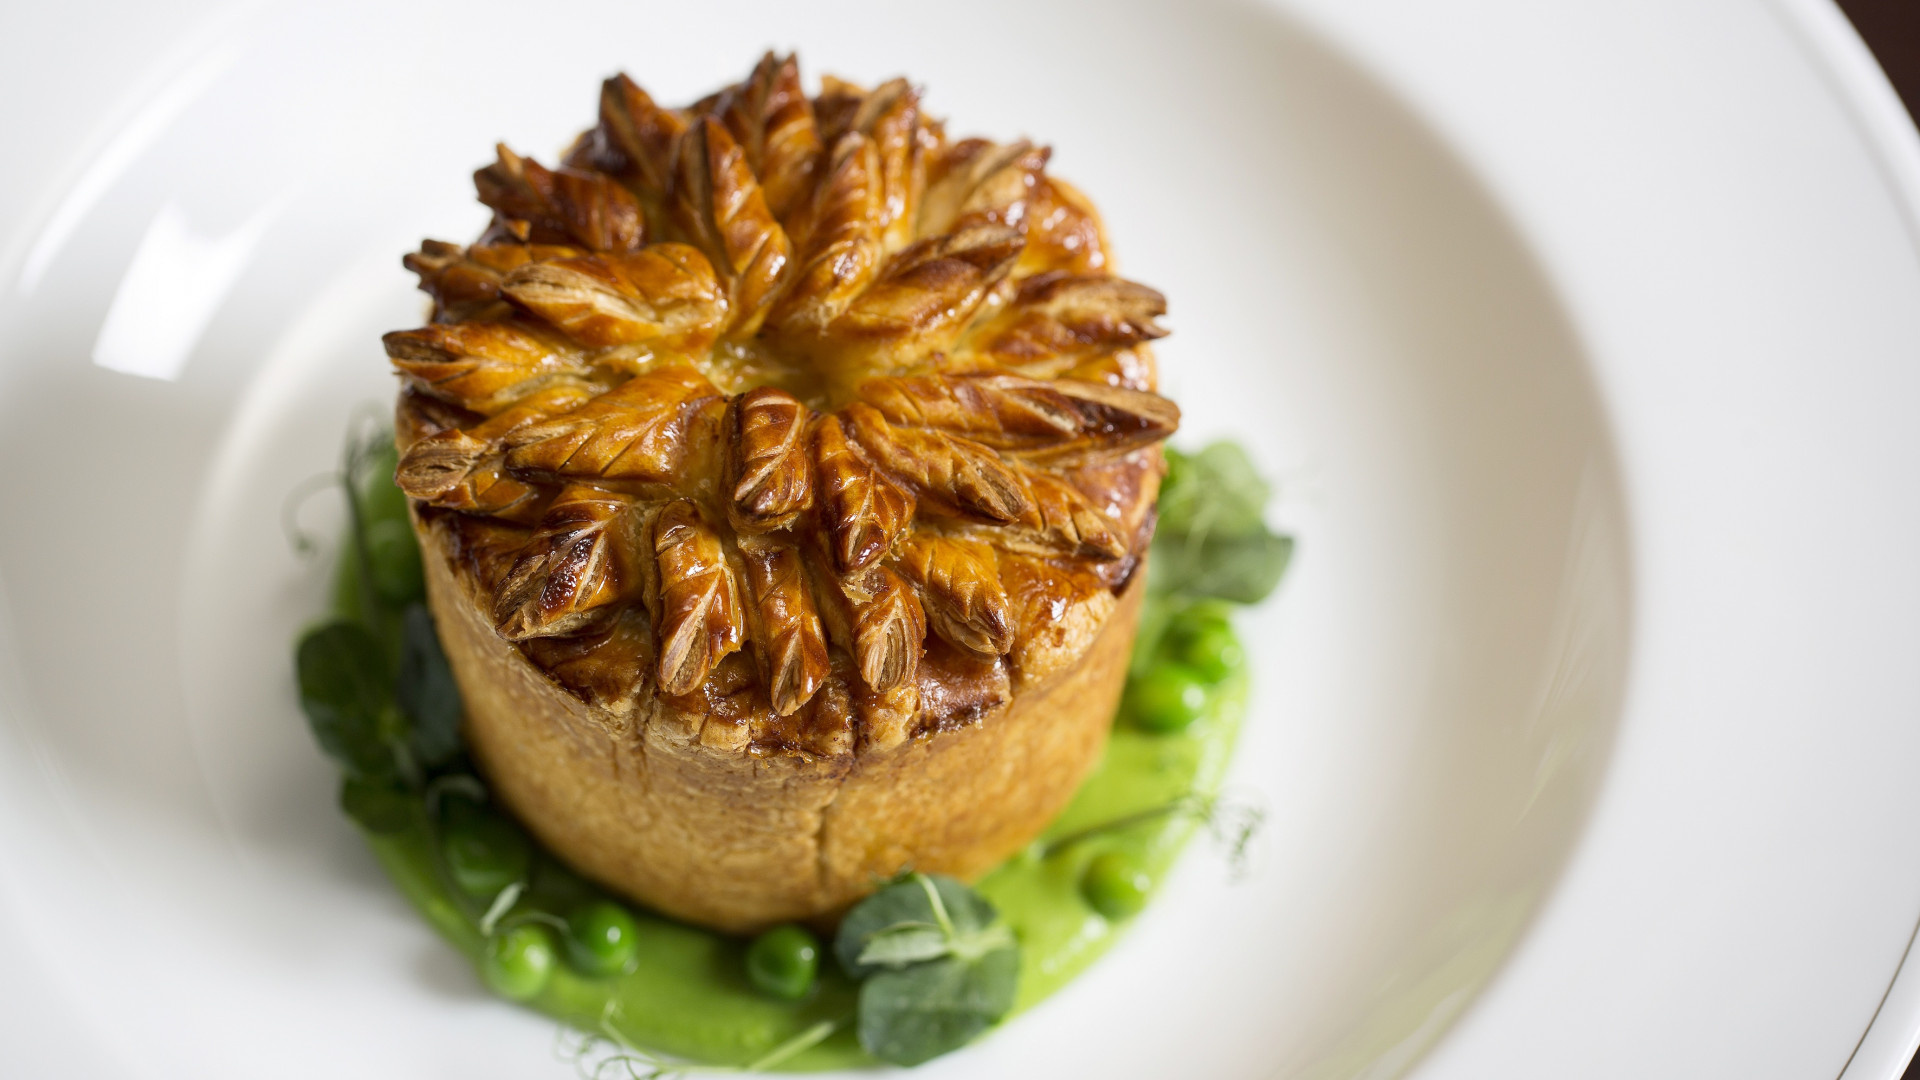 Where to Eat in Holborn: Pies at Holborn Dining Room